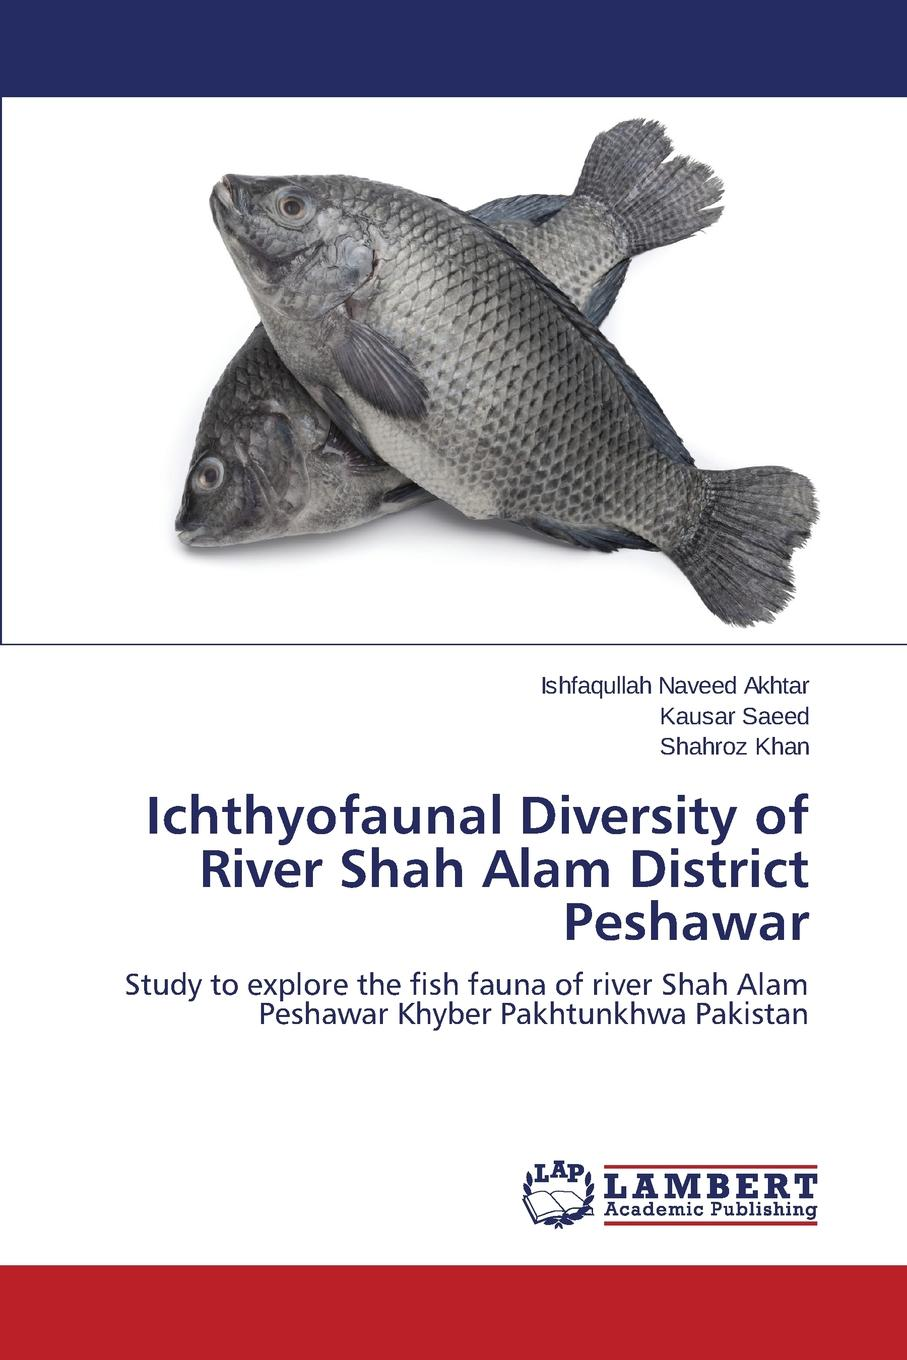 Naveed Akhtar Ishfaqullah, Saeed Kausar, Khan Shahroz Ichthyofaunal Diversity of River Shah Alam District Peshawar idries shah the exploits of the incomparable mulla nasrudin